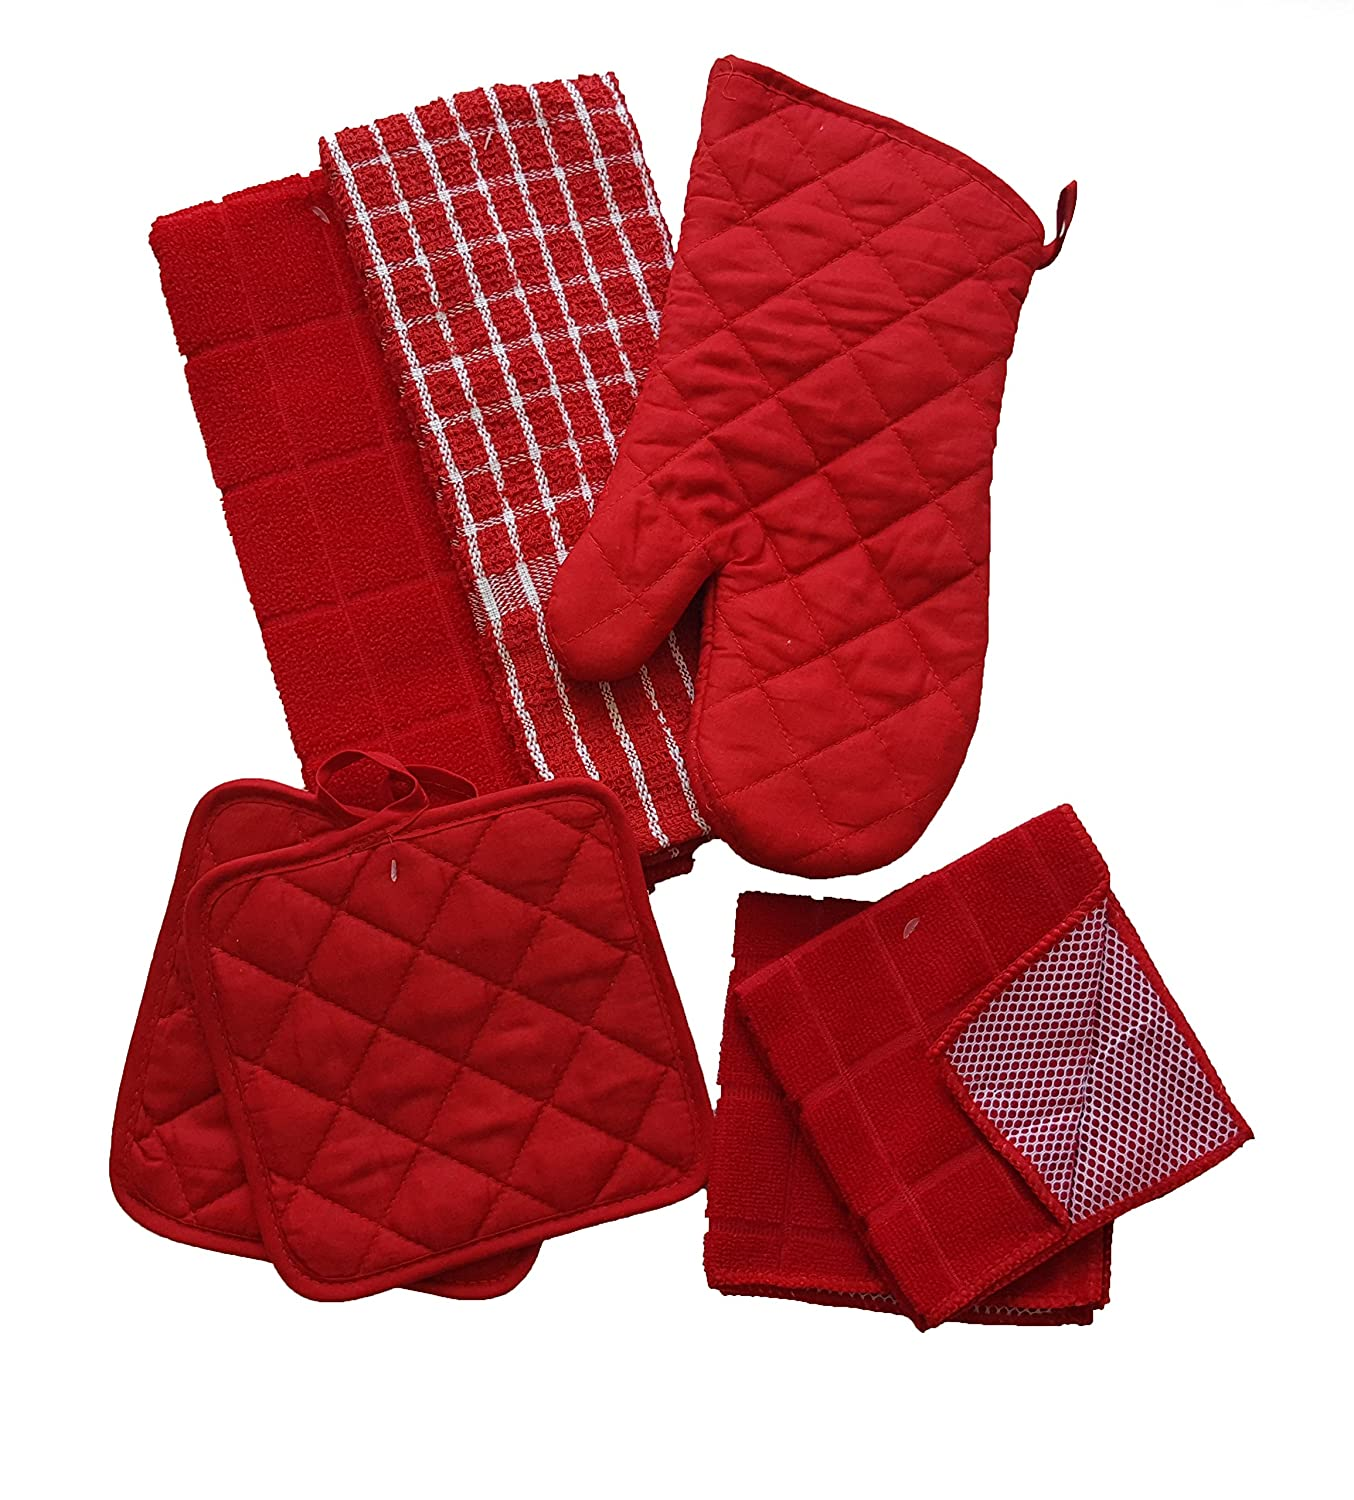 The Spotted Moose Colorful Red and White 7 Piece Kitchen Linen Bundle With 2 Dish Towels, 2 Dish Cloths, 2 Potholders, and 1 Oven Mitt